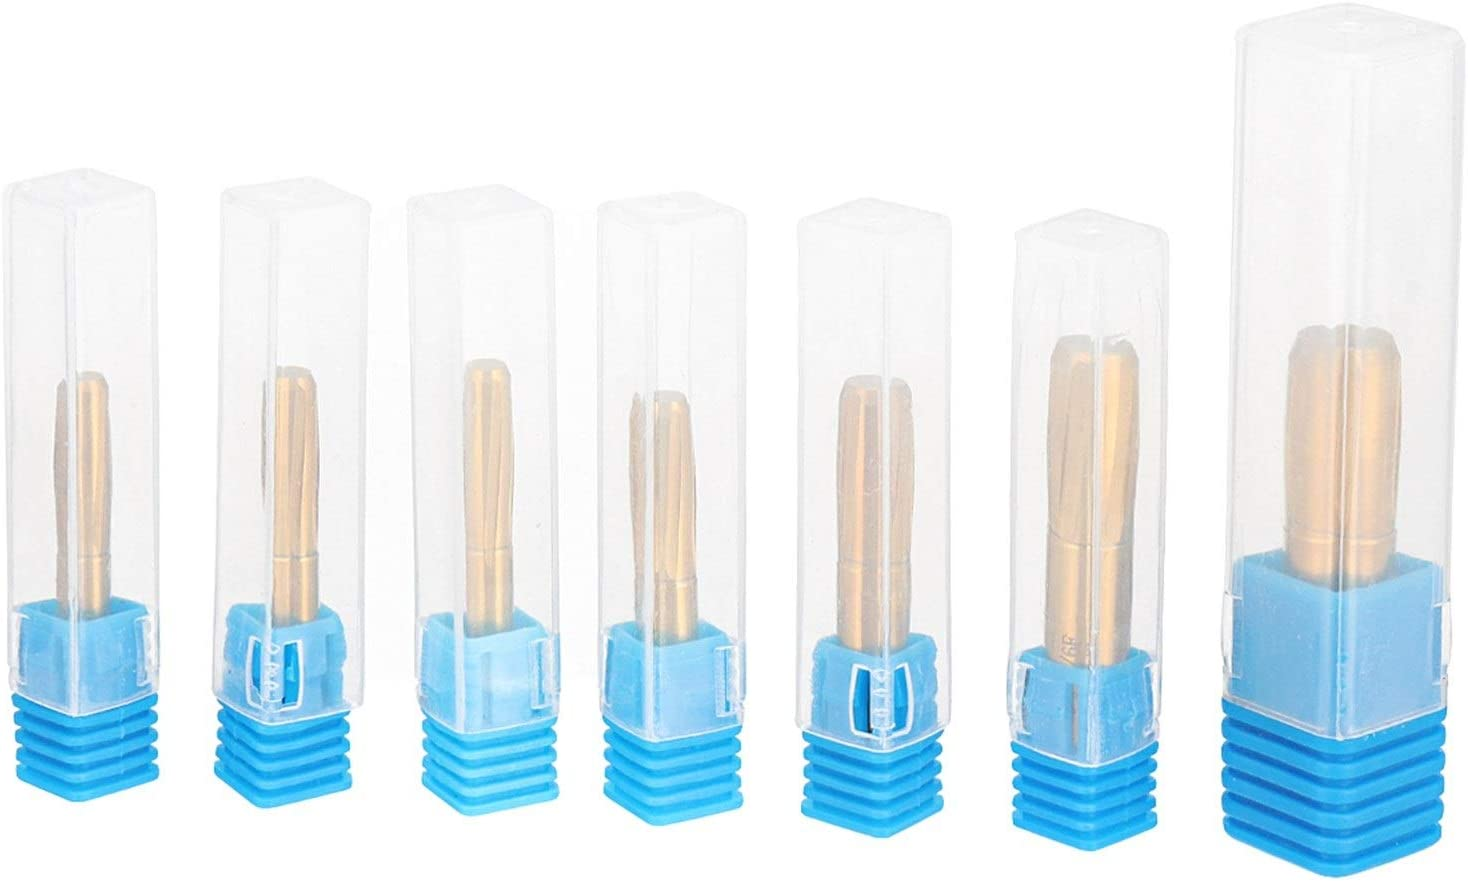 Very Easy to use 6 Flutes Spiral Reamer 5.5-11.43mm Push Button Chamber Helical Machine Tools Accessories Machine Reamer Strong and Sturdy (Color : 9.0mm) 9.0mm